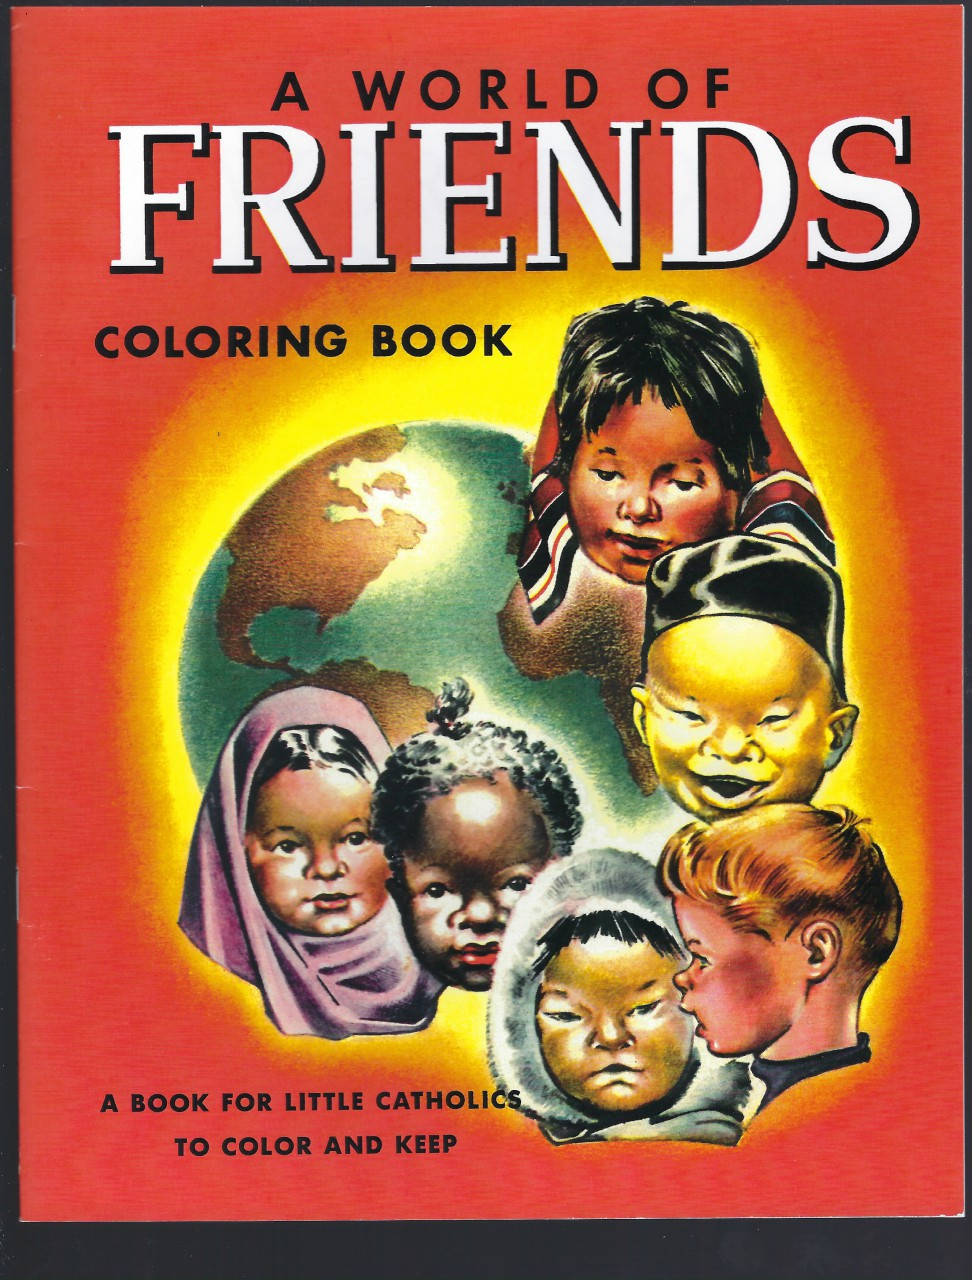 A World of Friends Coloring Book (A Book for Little Catholics To Color And Keep)